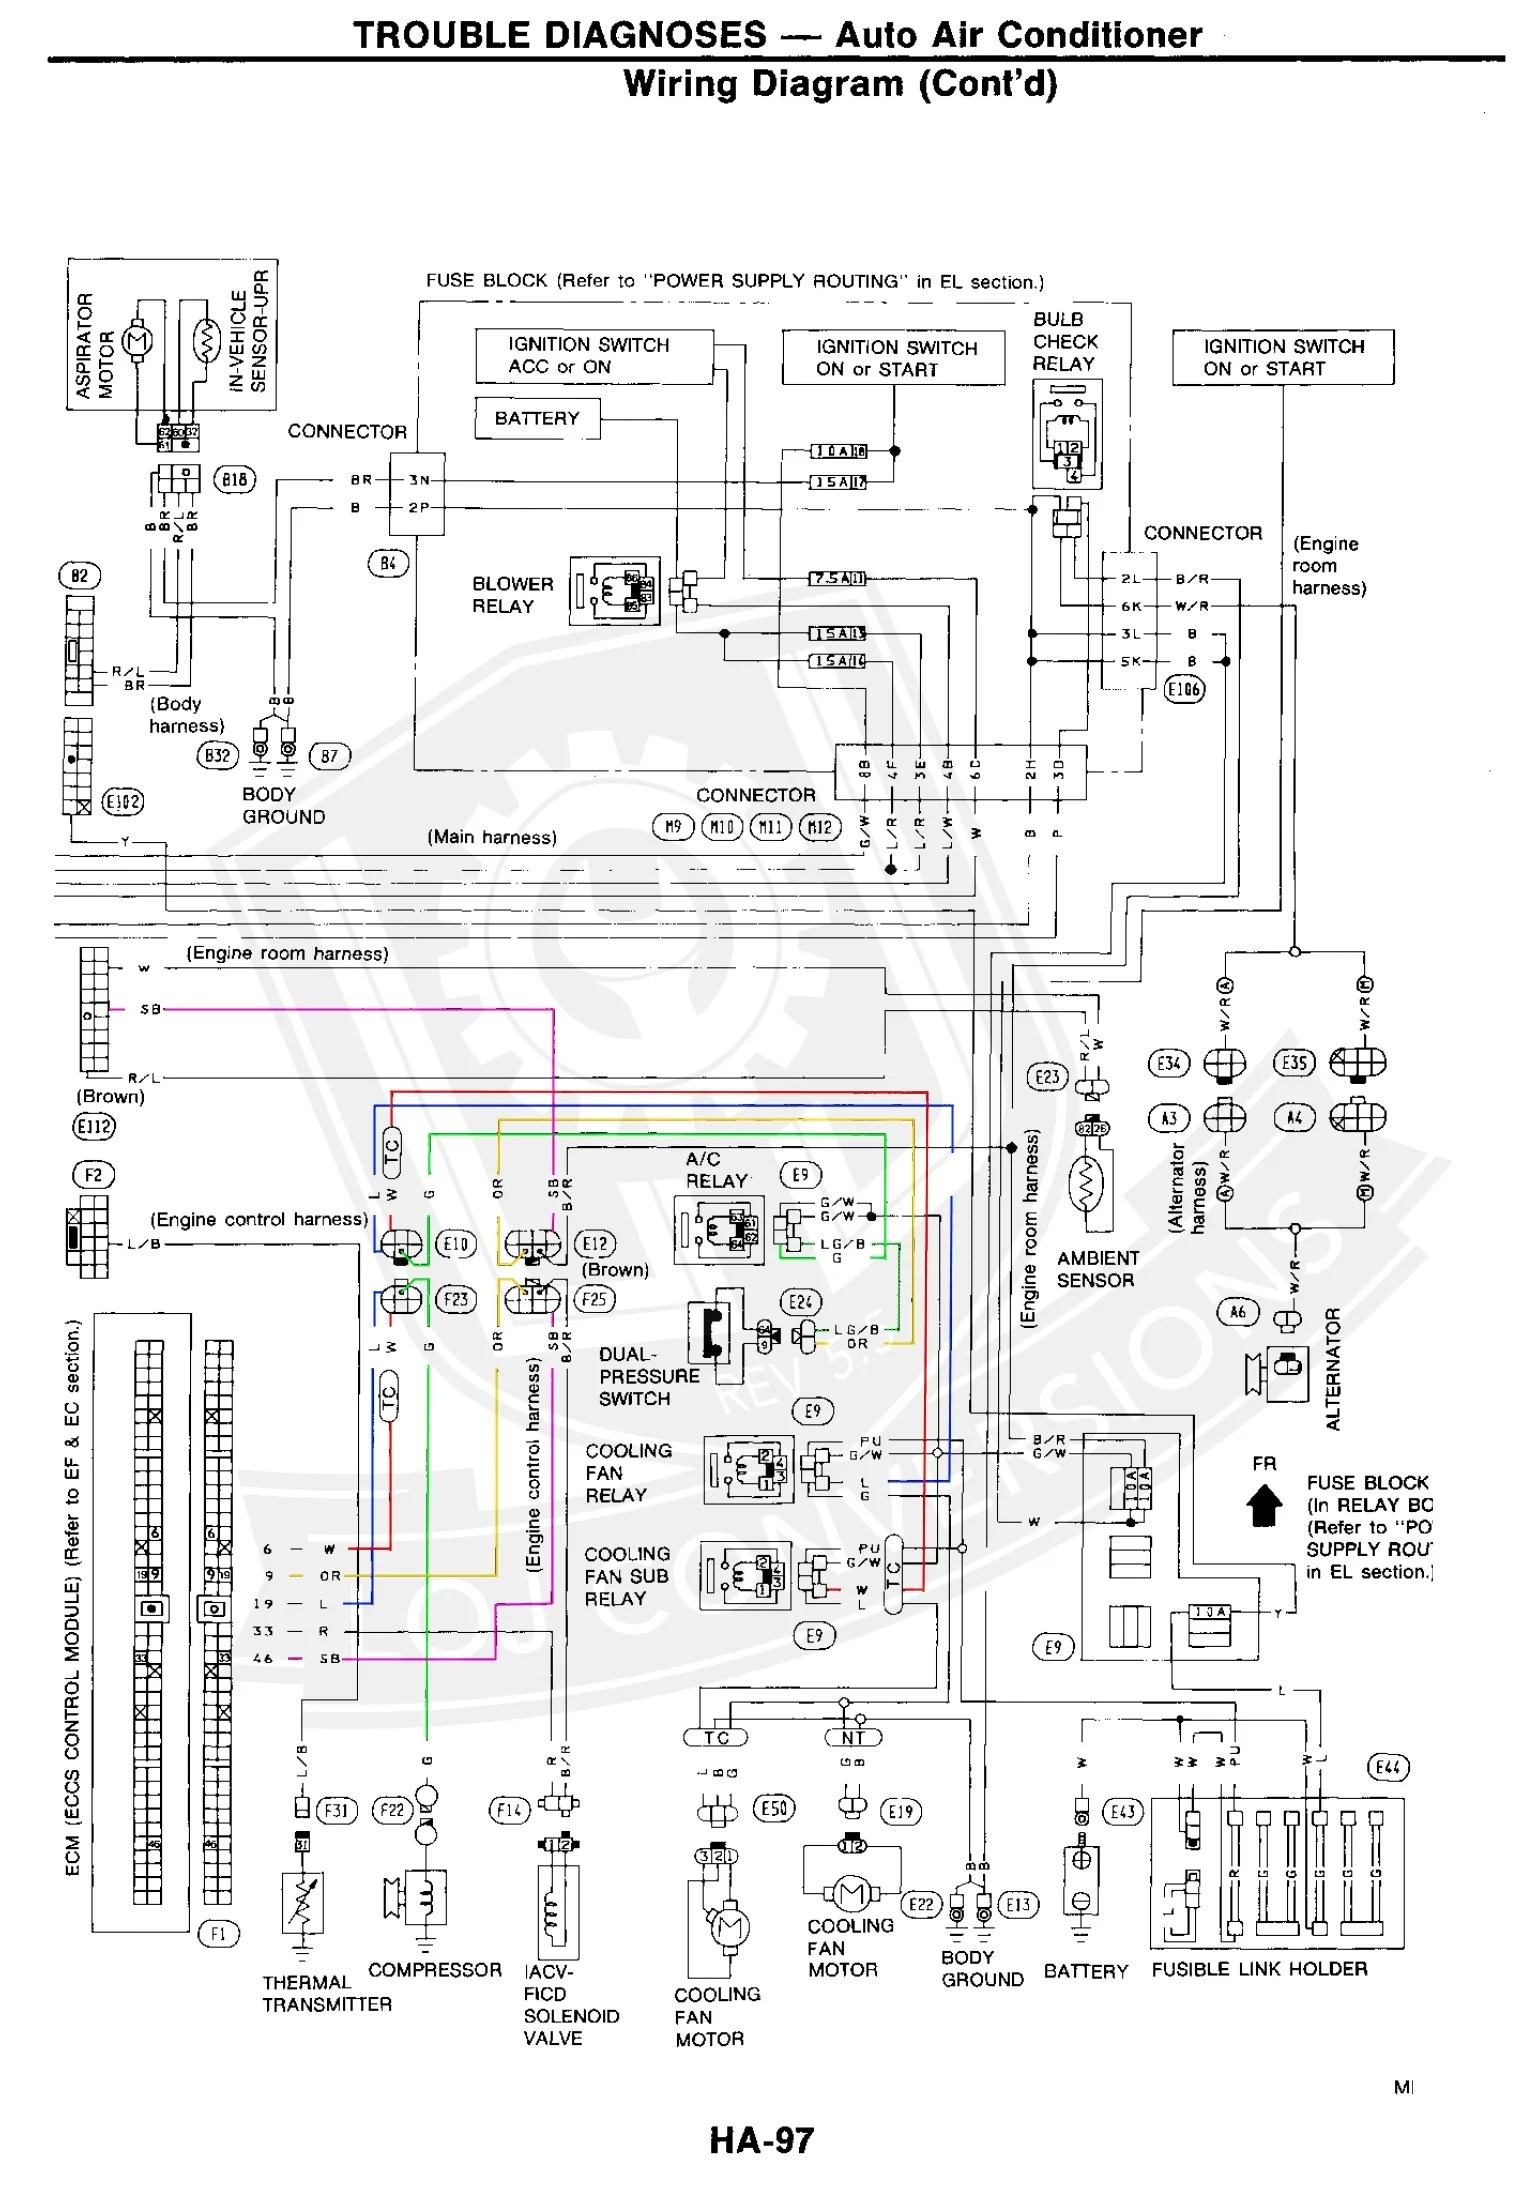 1990 240sx wiring diagram schematic data wiring diagram schema 1990 240sx black 1990 240sx efi diagram [ 1515 x 2194 Pixel ]